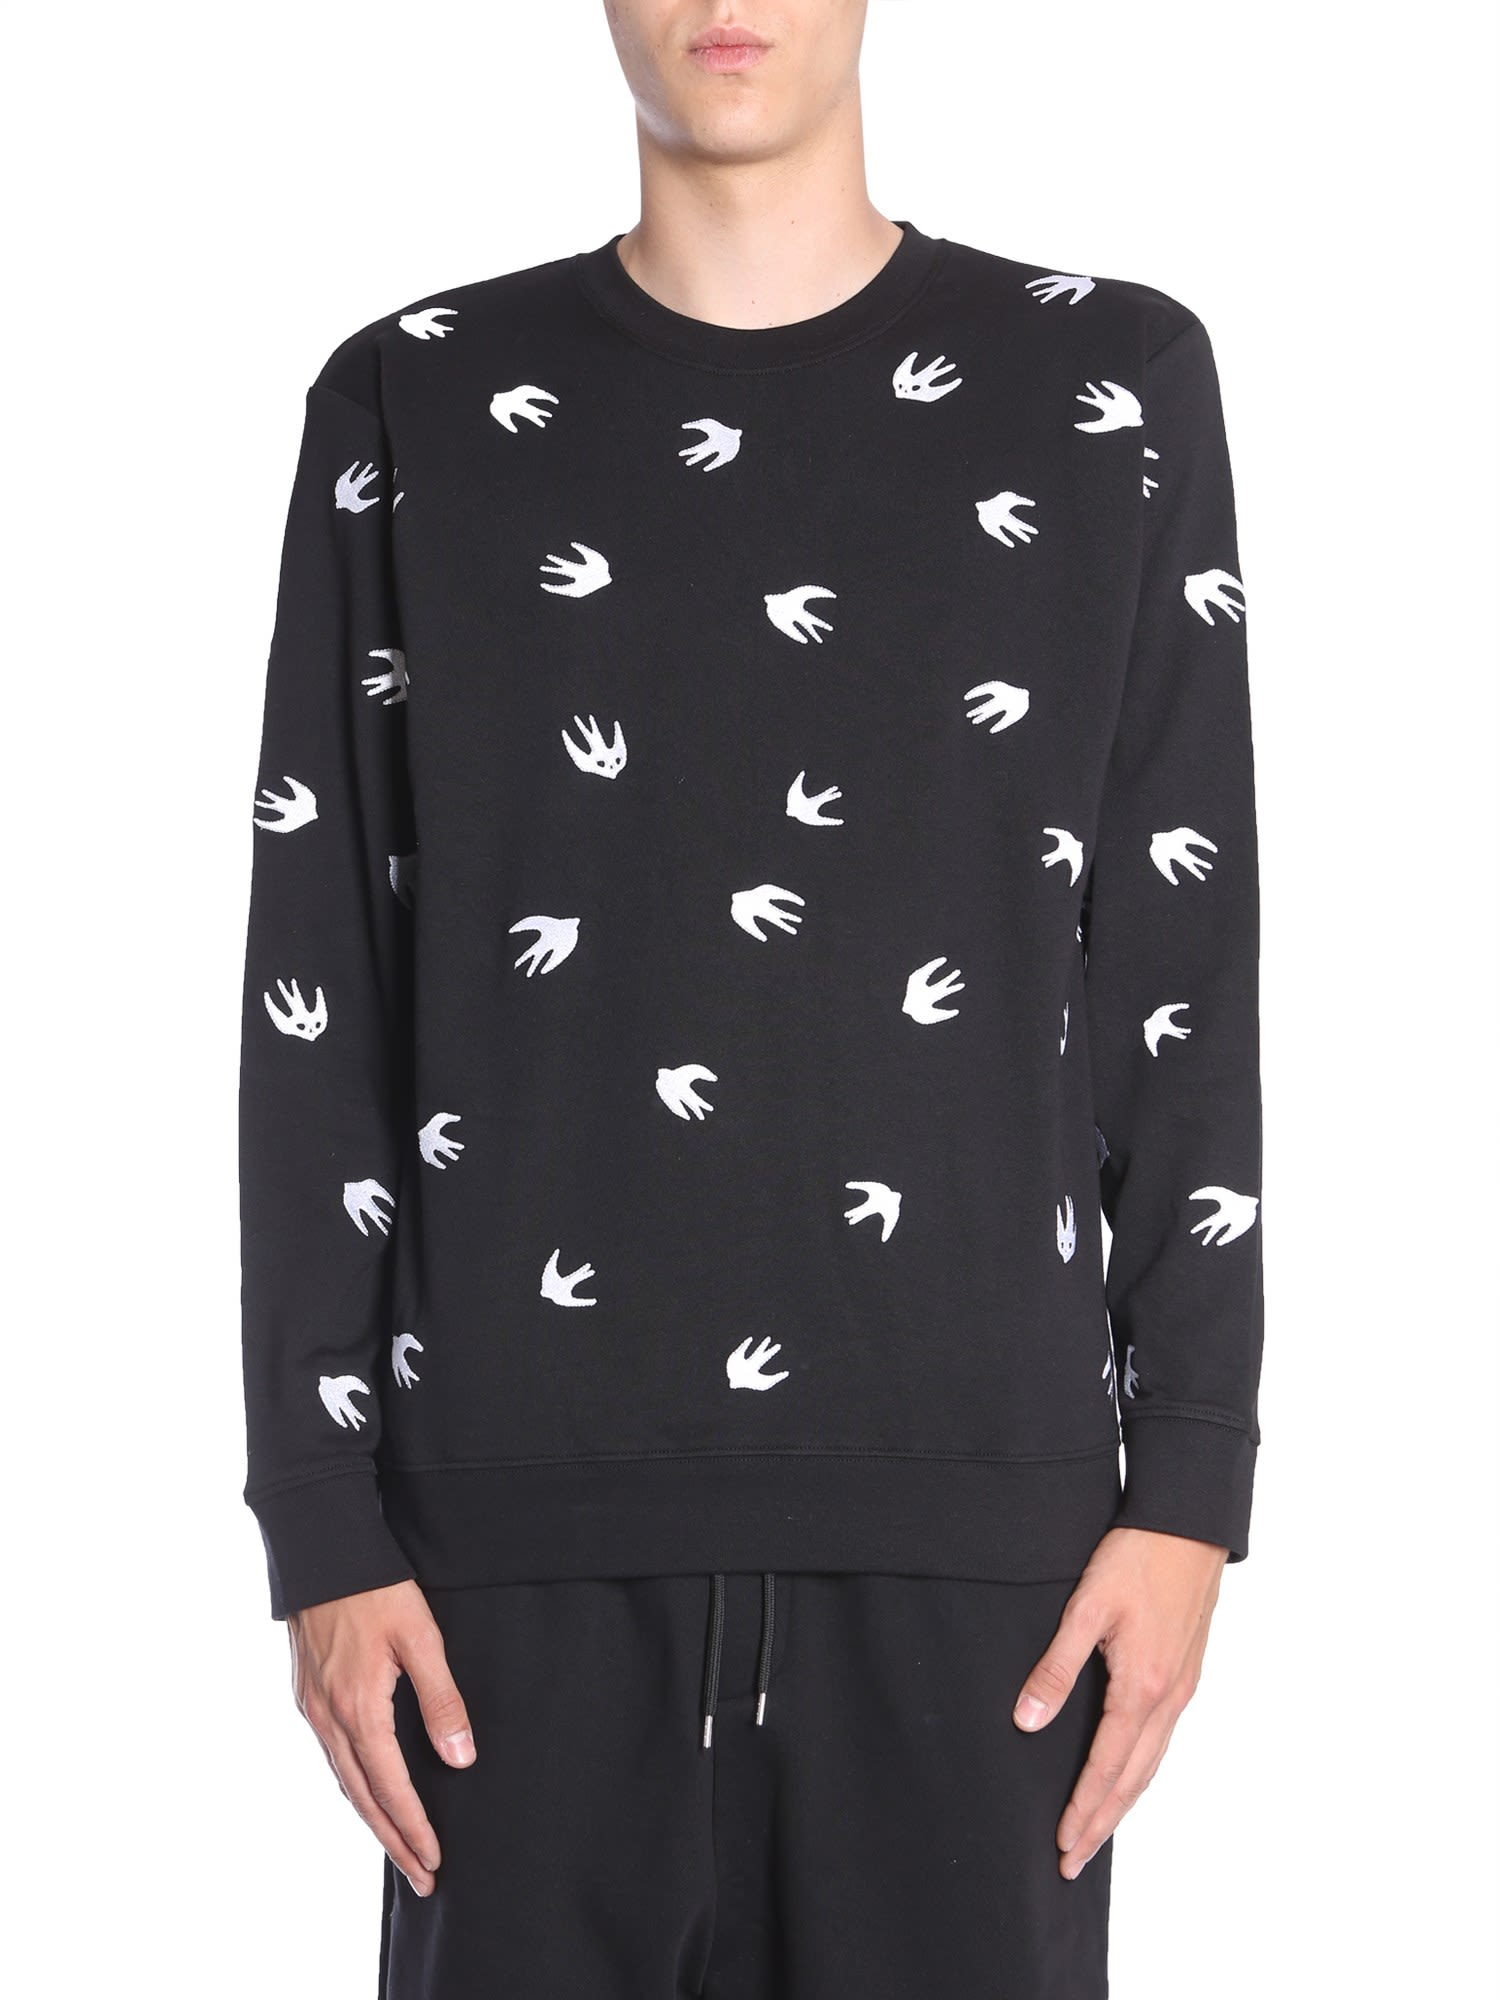 MCQ BY ALEXANDER MCQUEEN SWEATSHIRT WITH EMBROIDERED SWALLOW